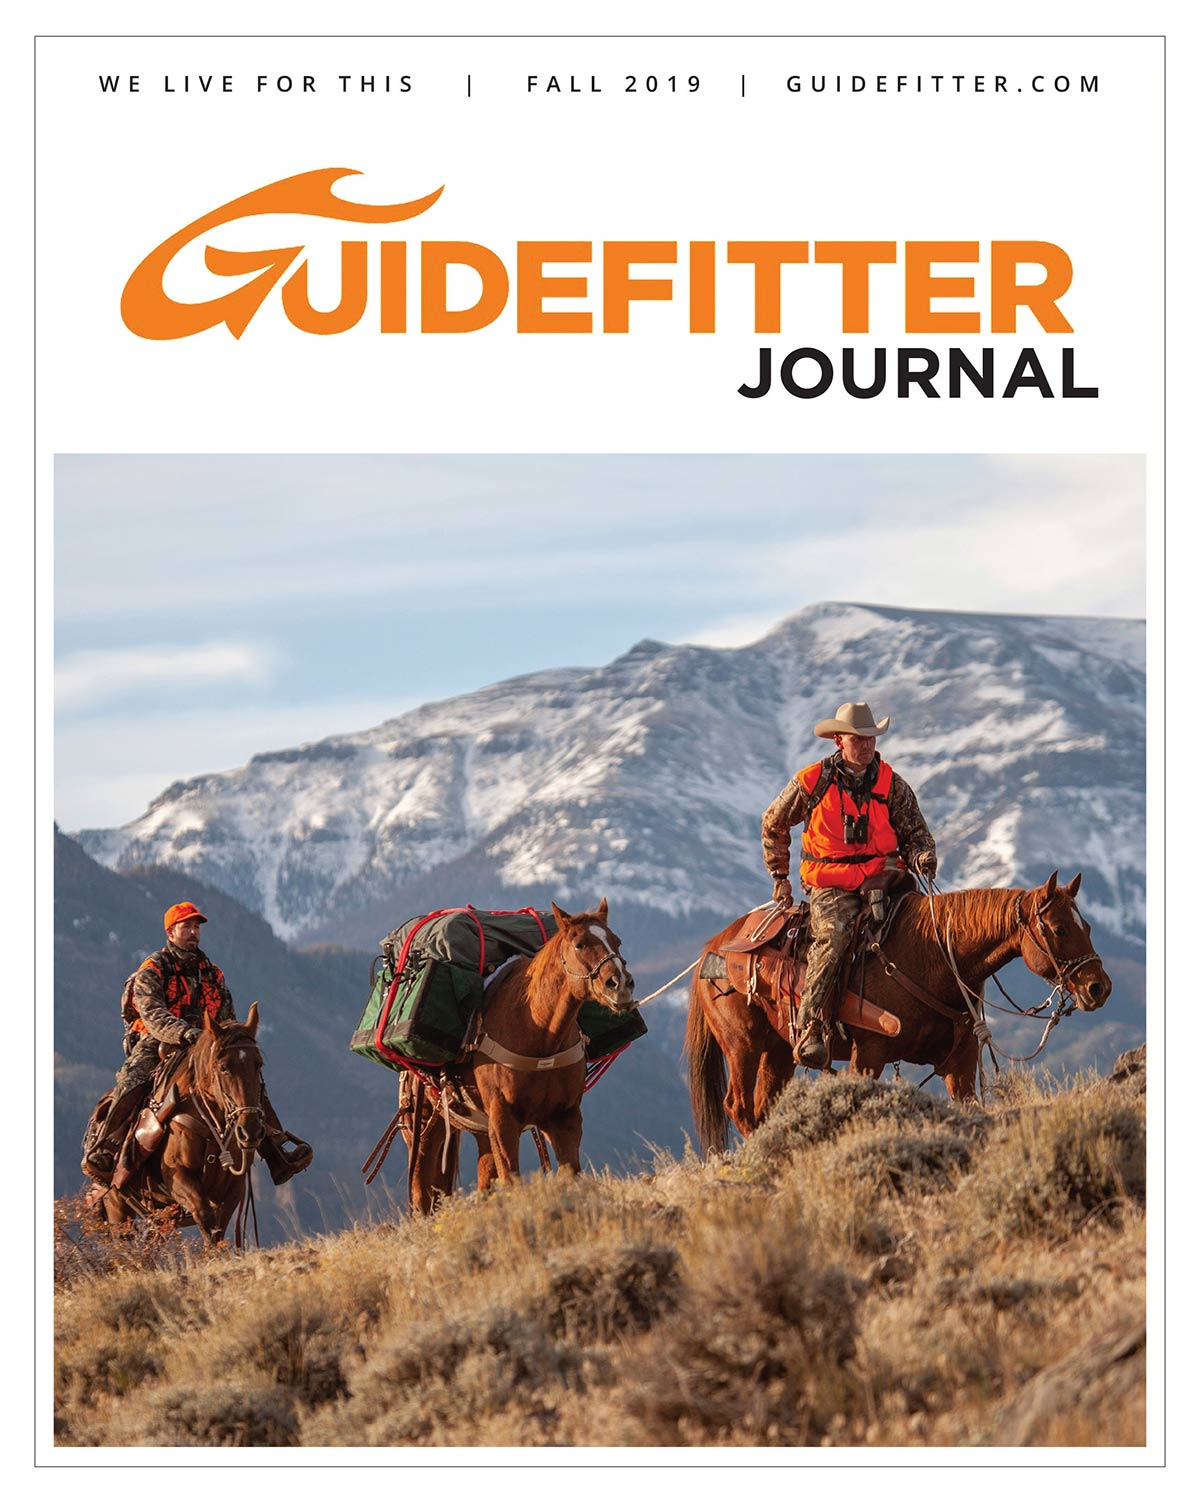 Guidefitter Releases the Fall Issue of The Guidefitter Journal